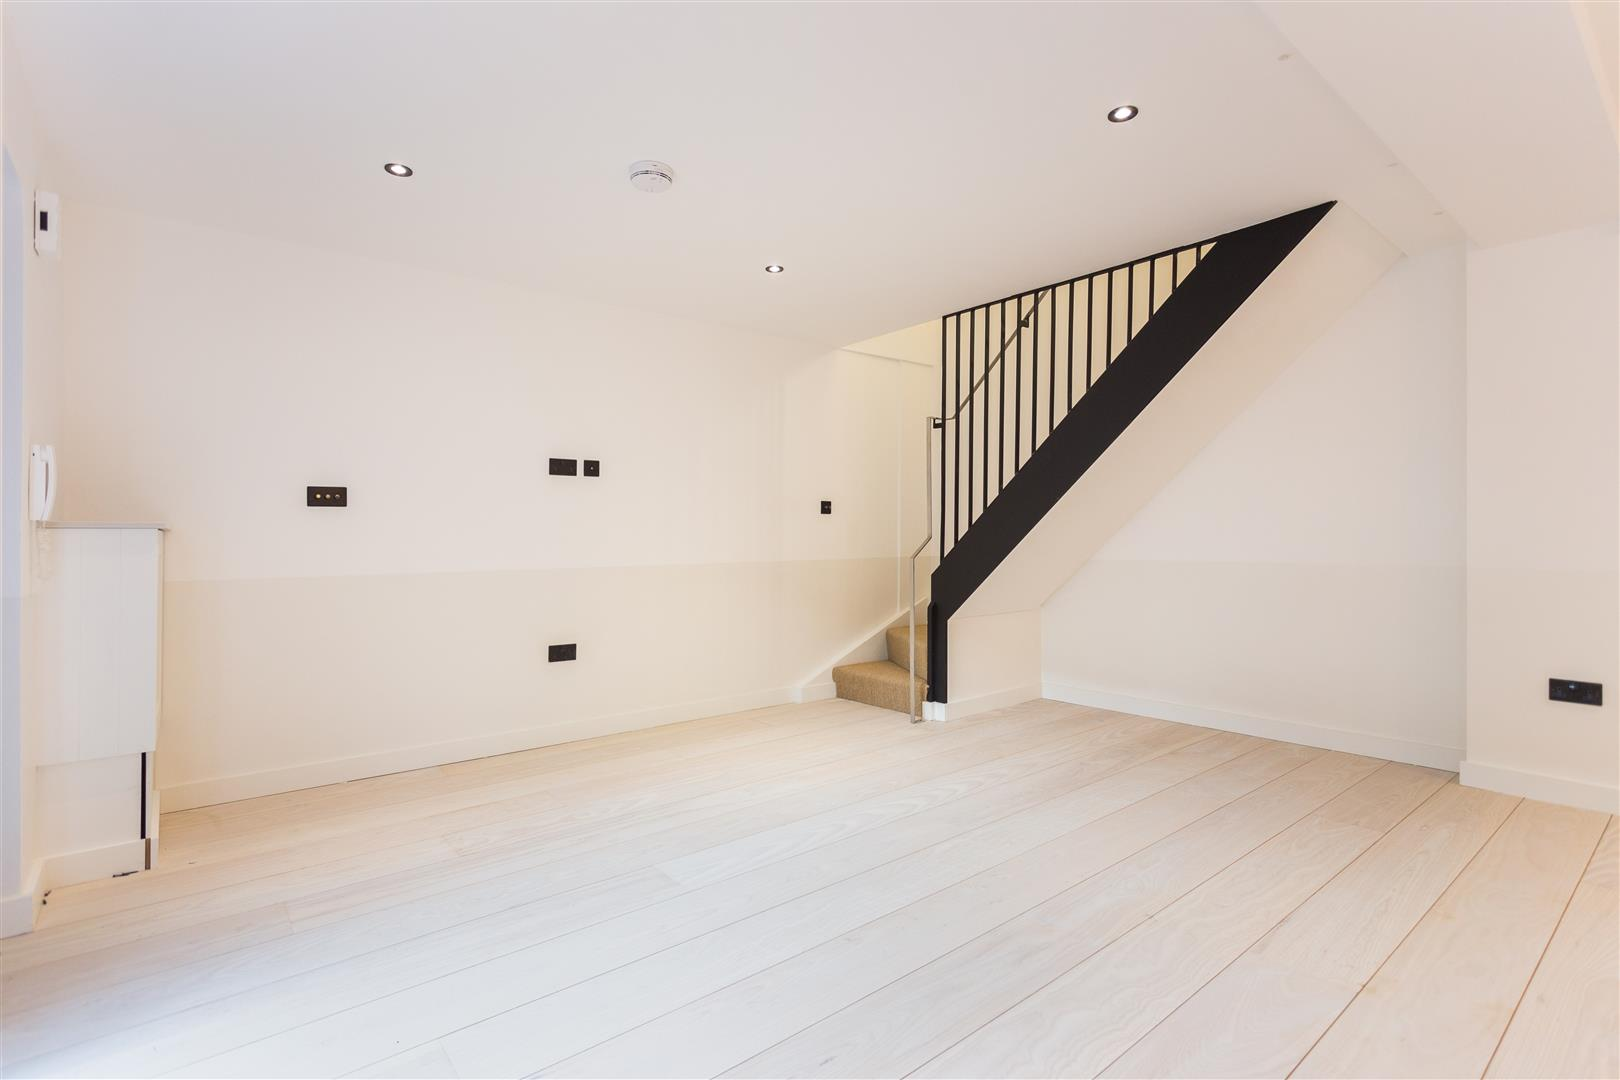 A photo of unfurnished rental property currently available here at Davies & Davies estate agents